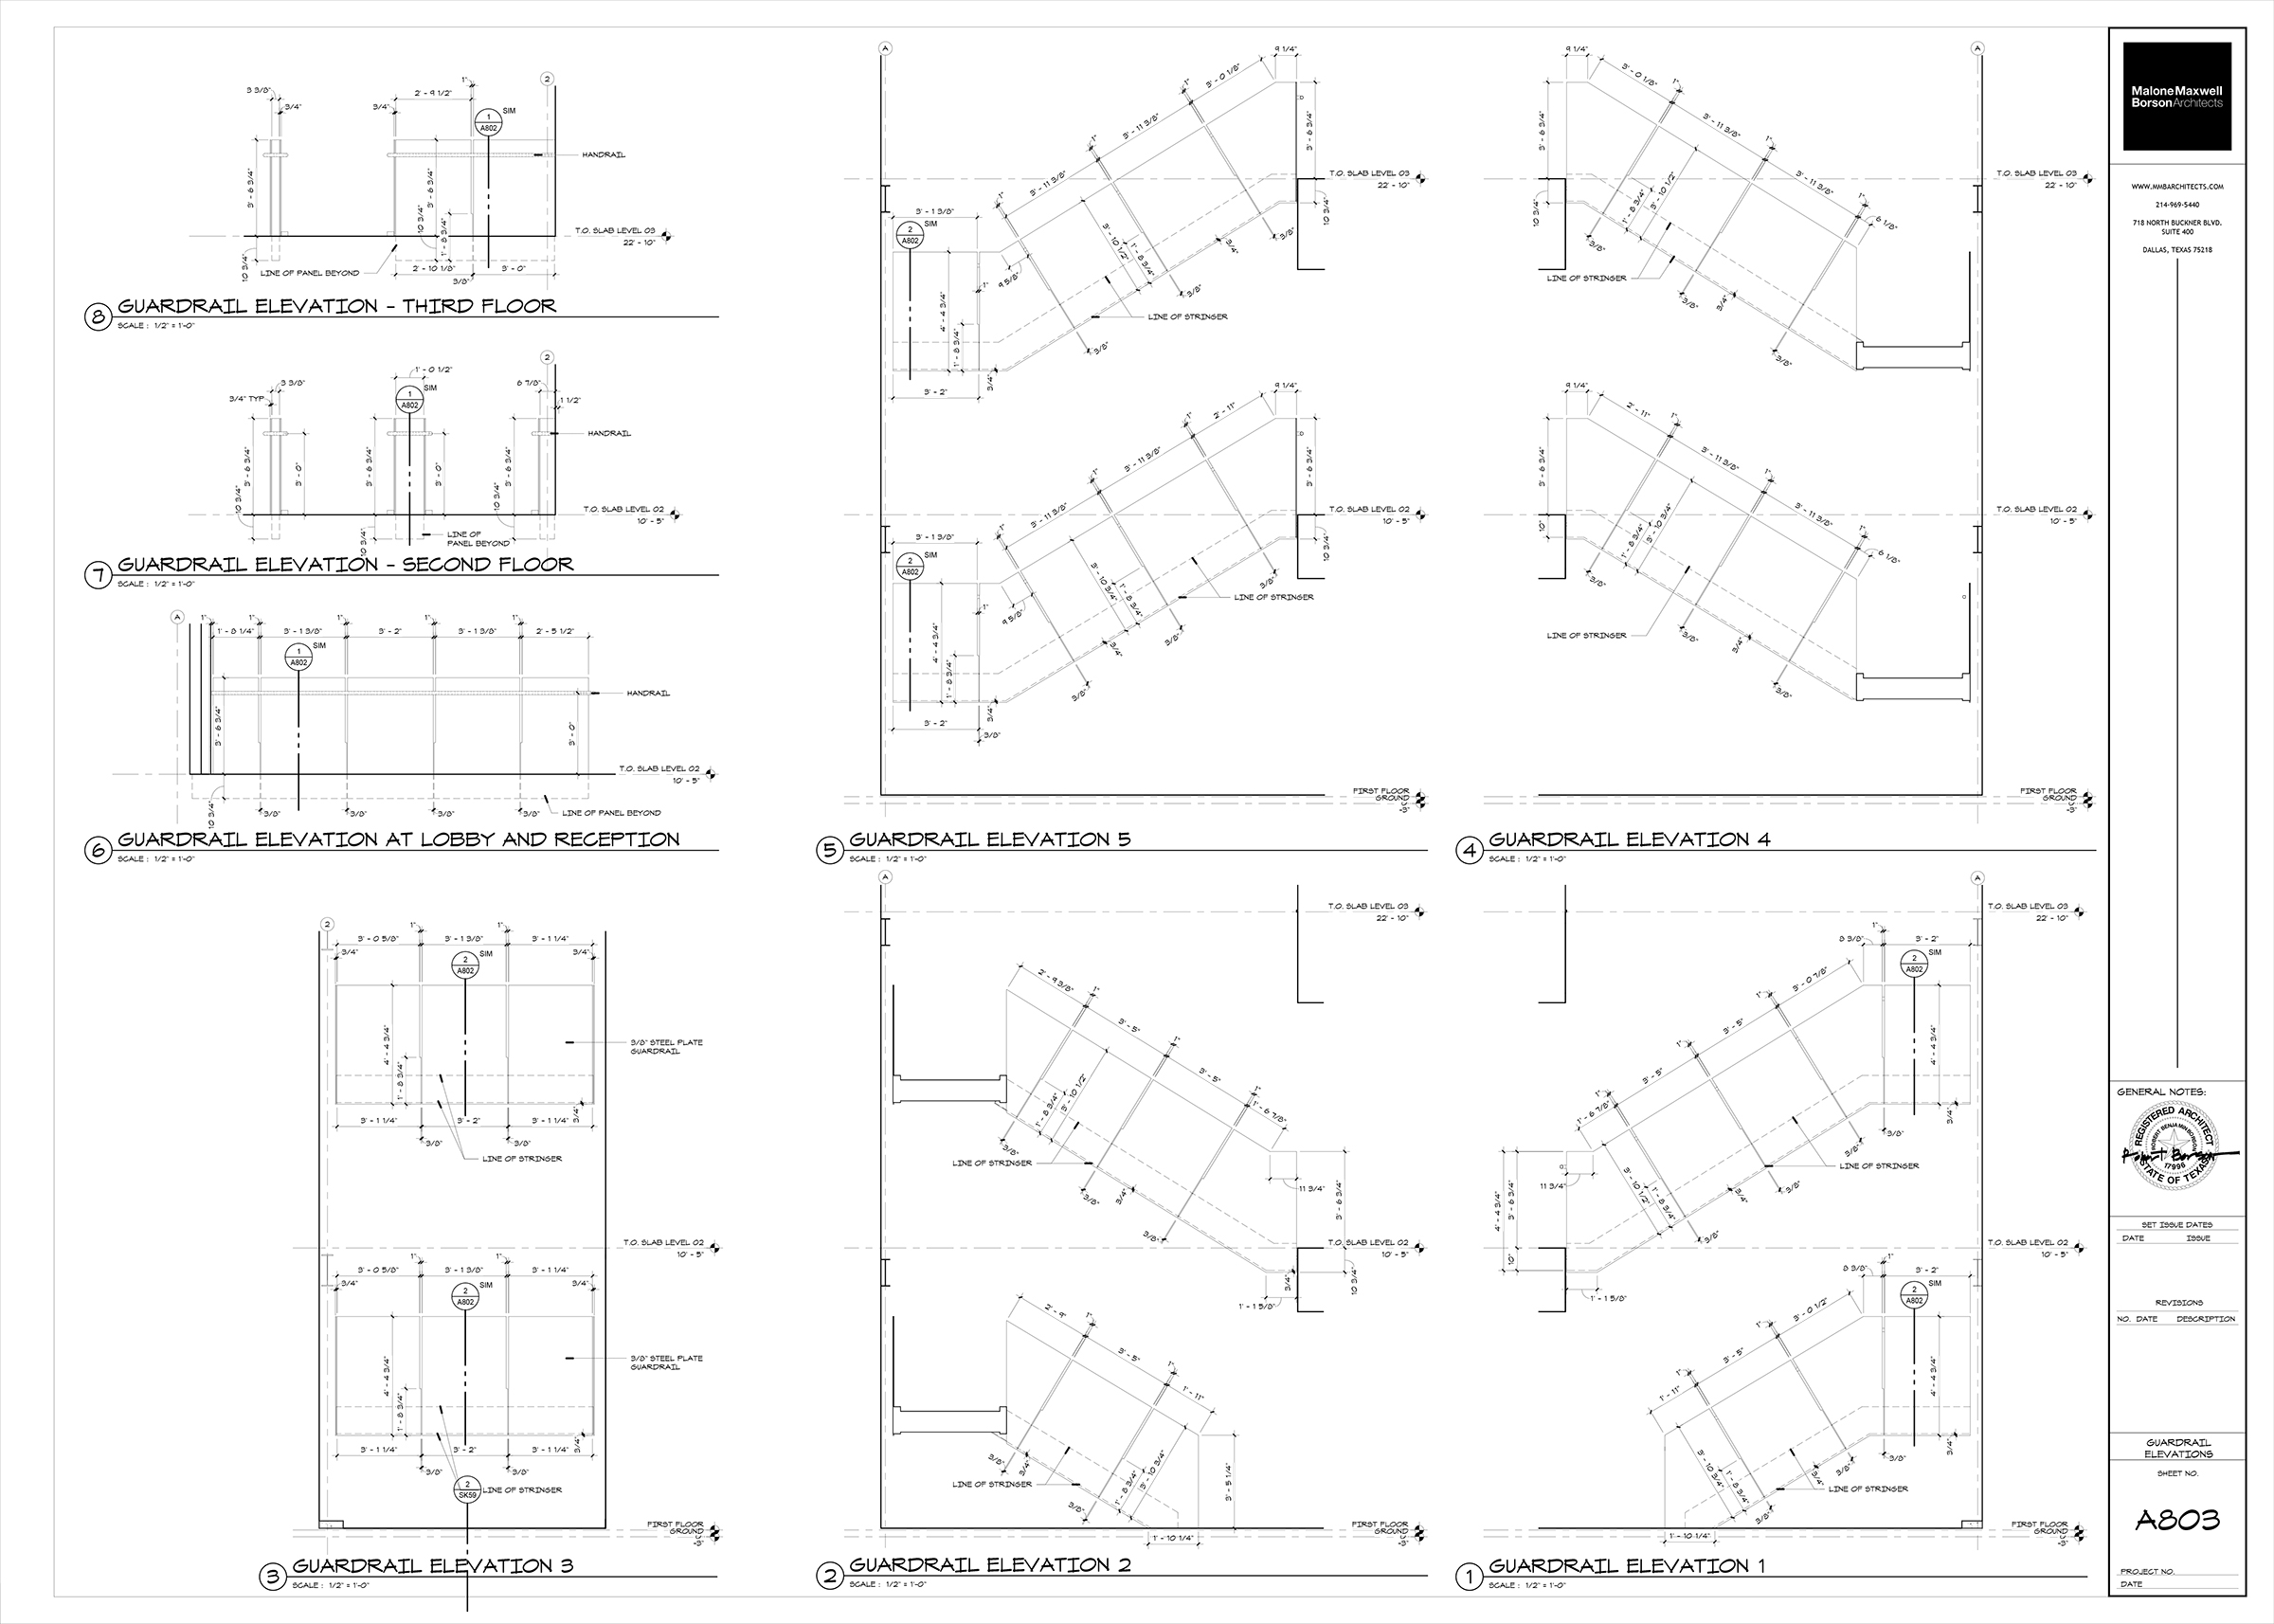 Interior Stairwell Design + Graphics | Life of an Architect